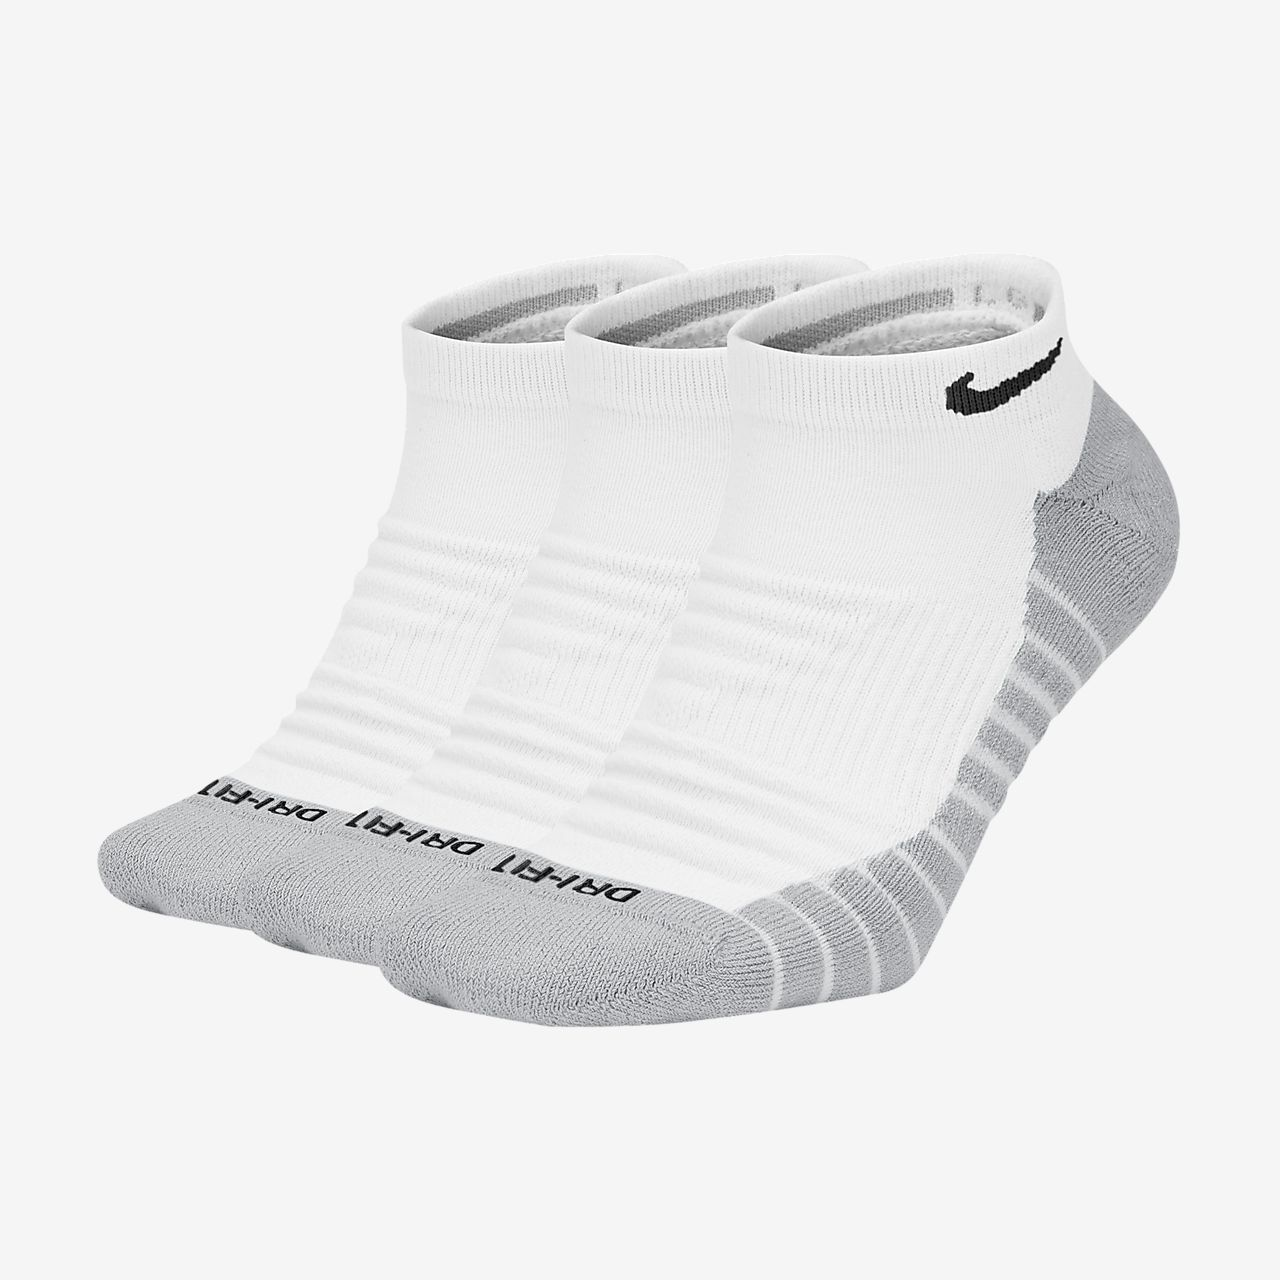 Chaussettes de training invisibles Nike Everyday Max Cushioned (3 paires)